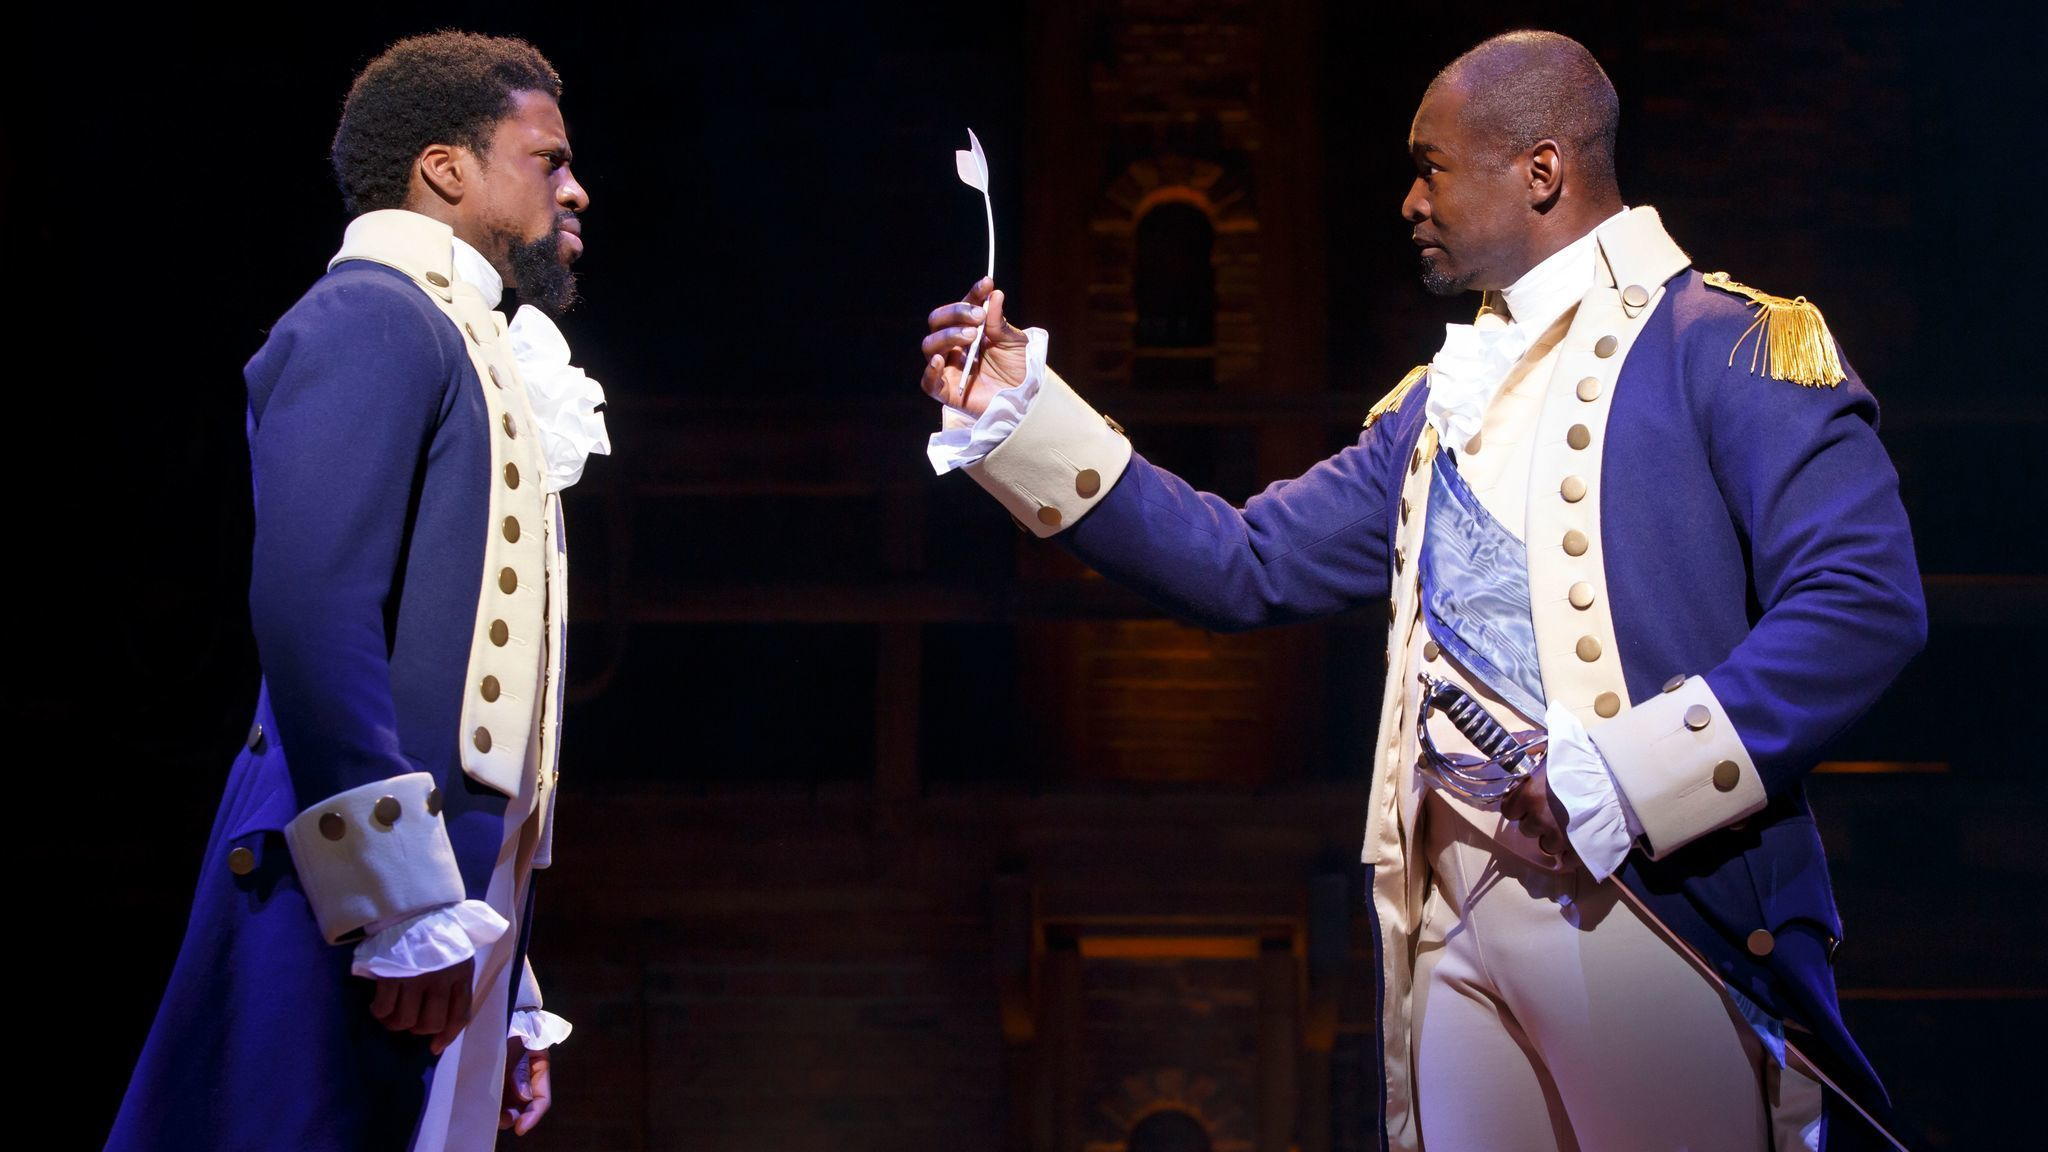 'Hamilton' brings its tale of American idealism to L.A. at a moment when it's needed